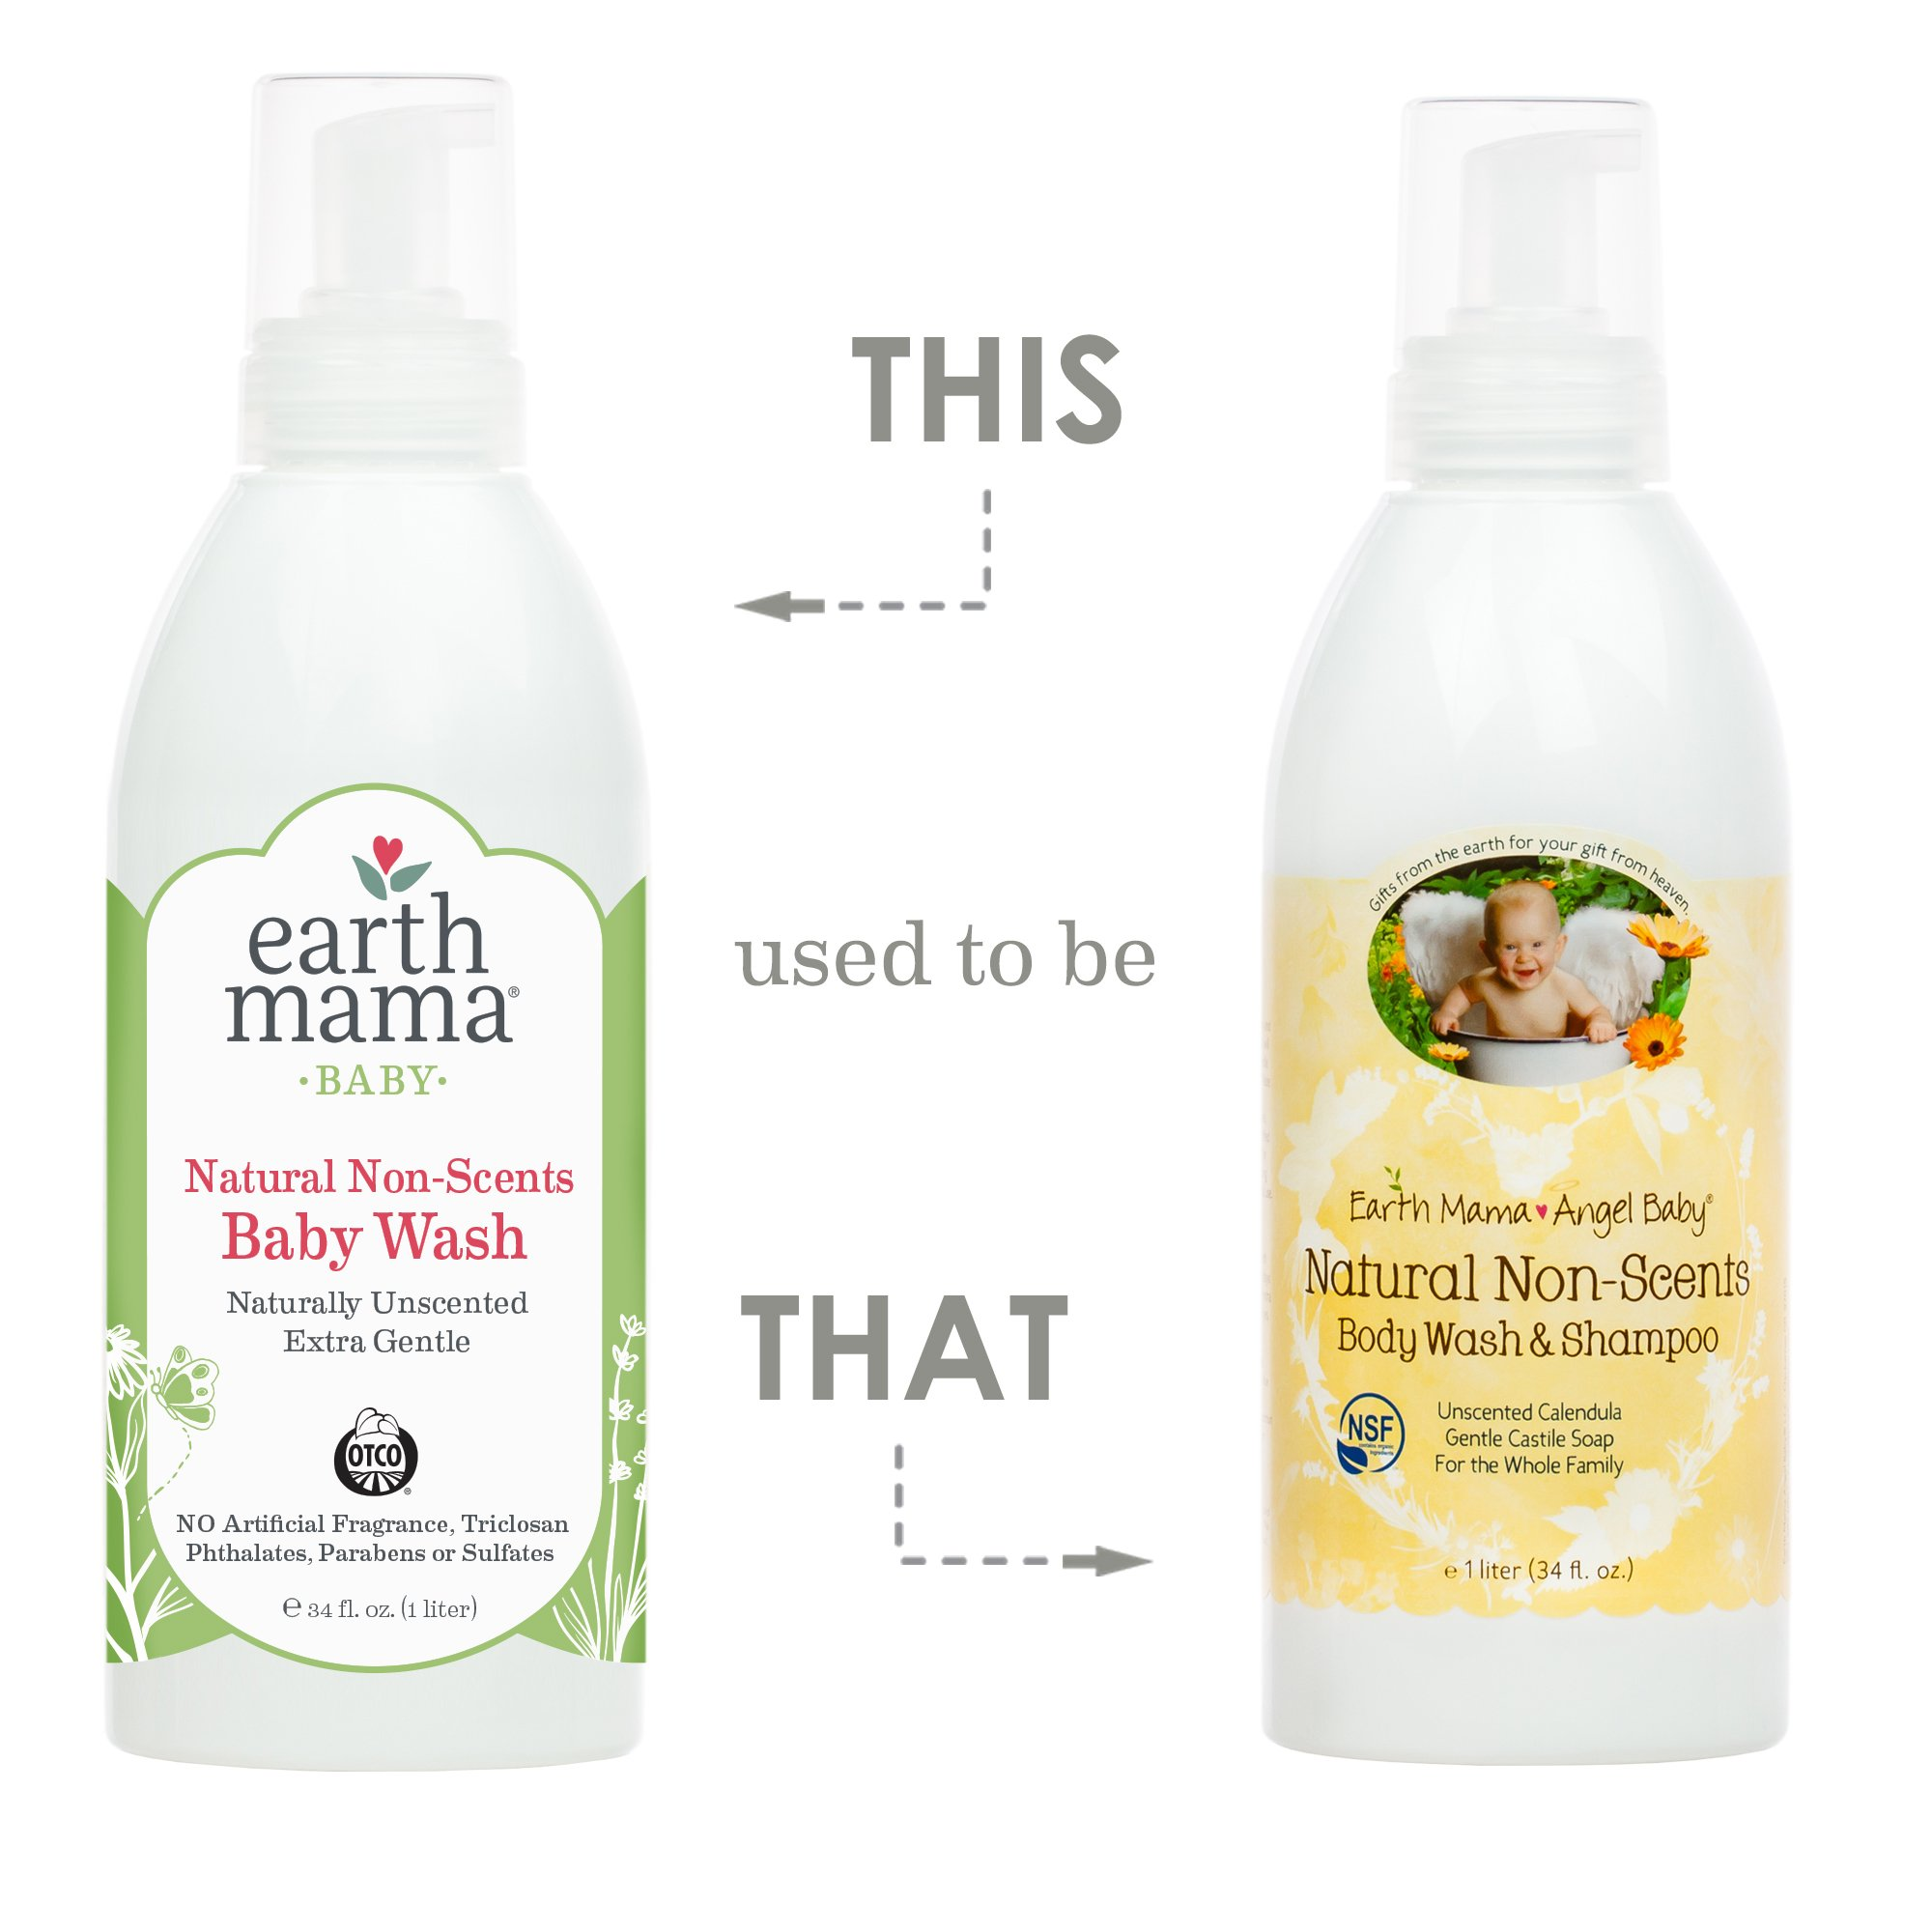 Earth Mama Natural Non-Scents Baby Wash Gentle Castile Soap for Sensitive Skin, 34-Fluid Ounce by Earth Mama (Image #3)